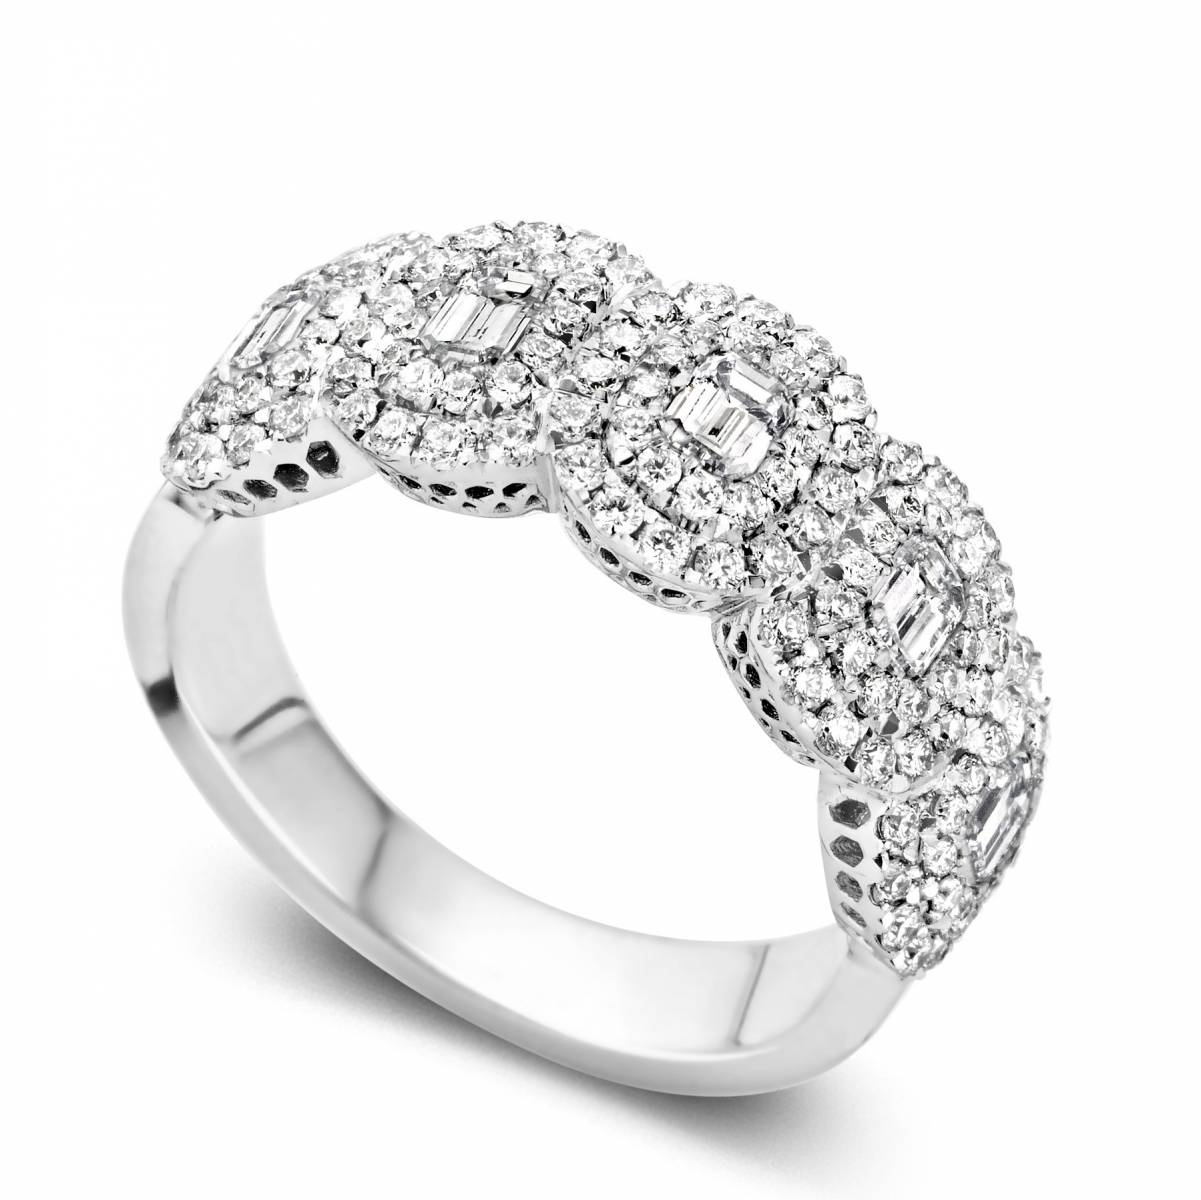 Juwelier Vandromme - Juwelen - Verlovingsring - Trouwring  – House of Weddings - 8